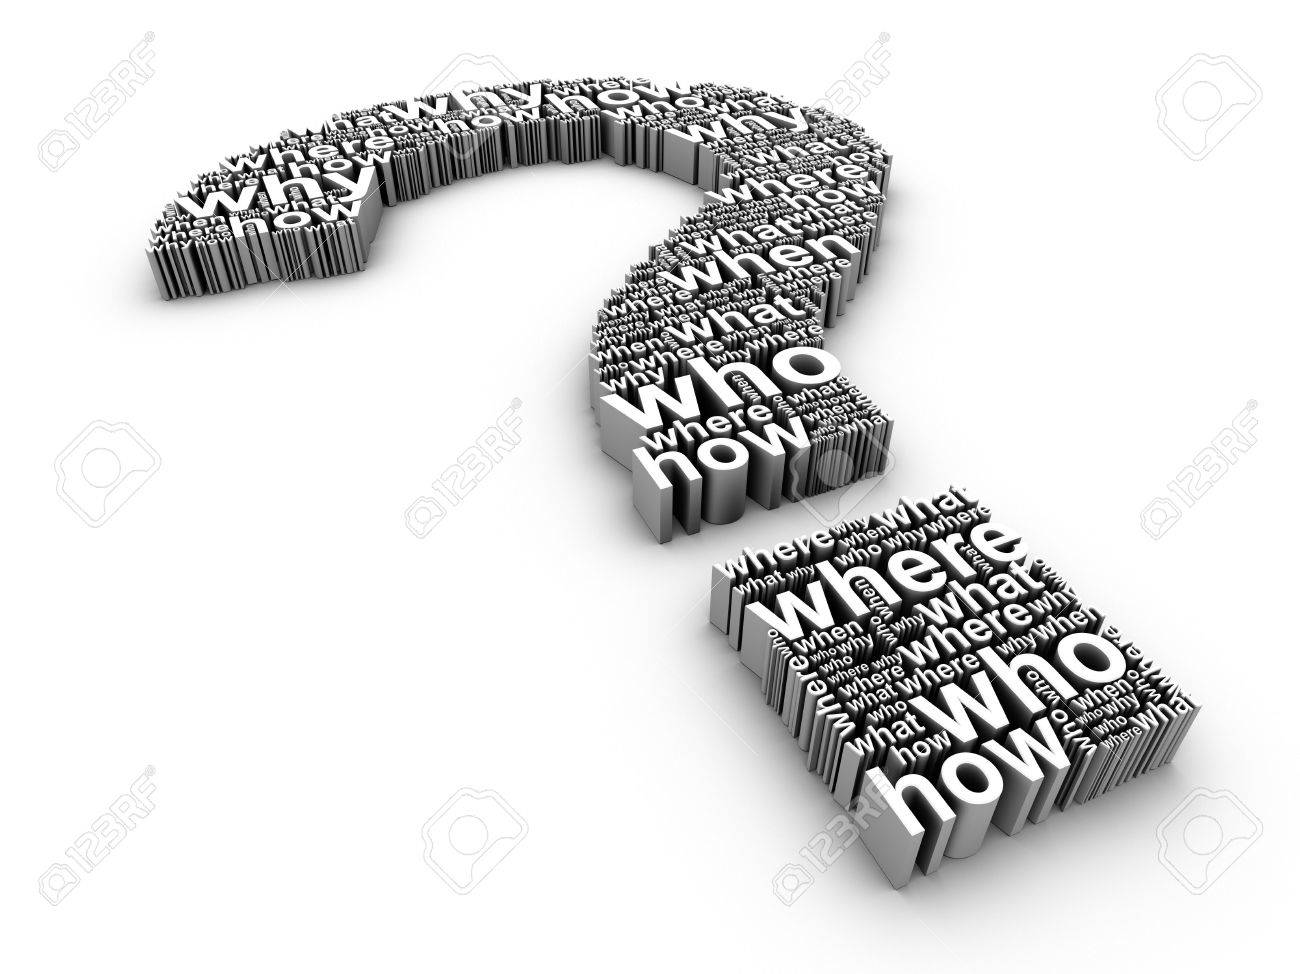 3d question mark made up of words on a white background Stock Photo - 5919932